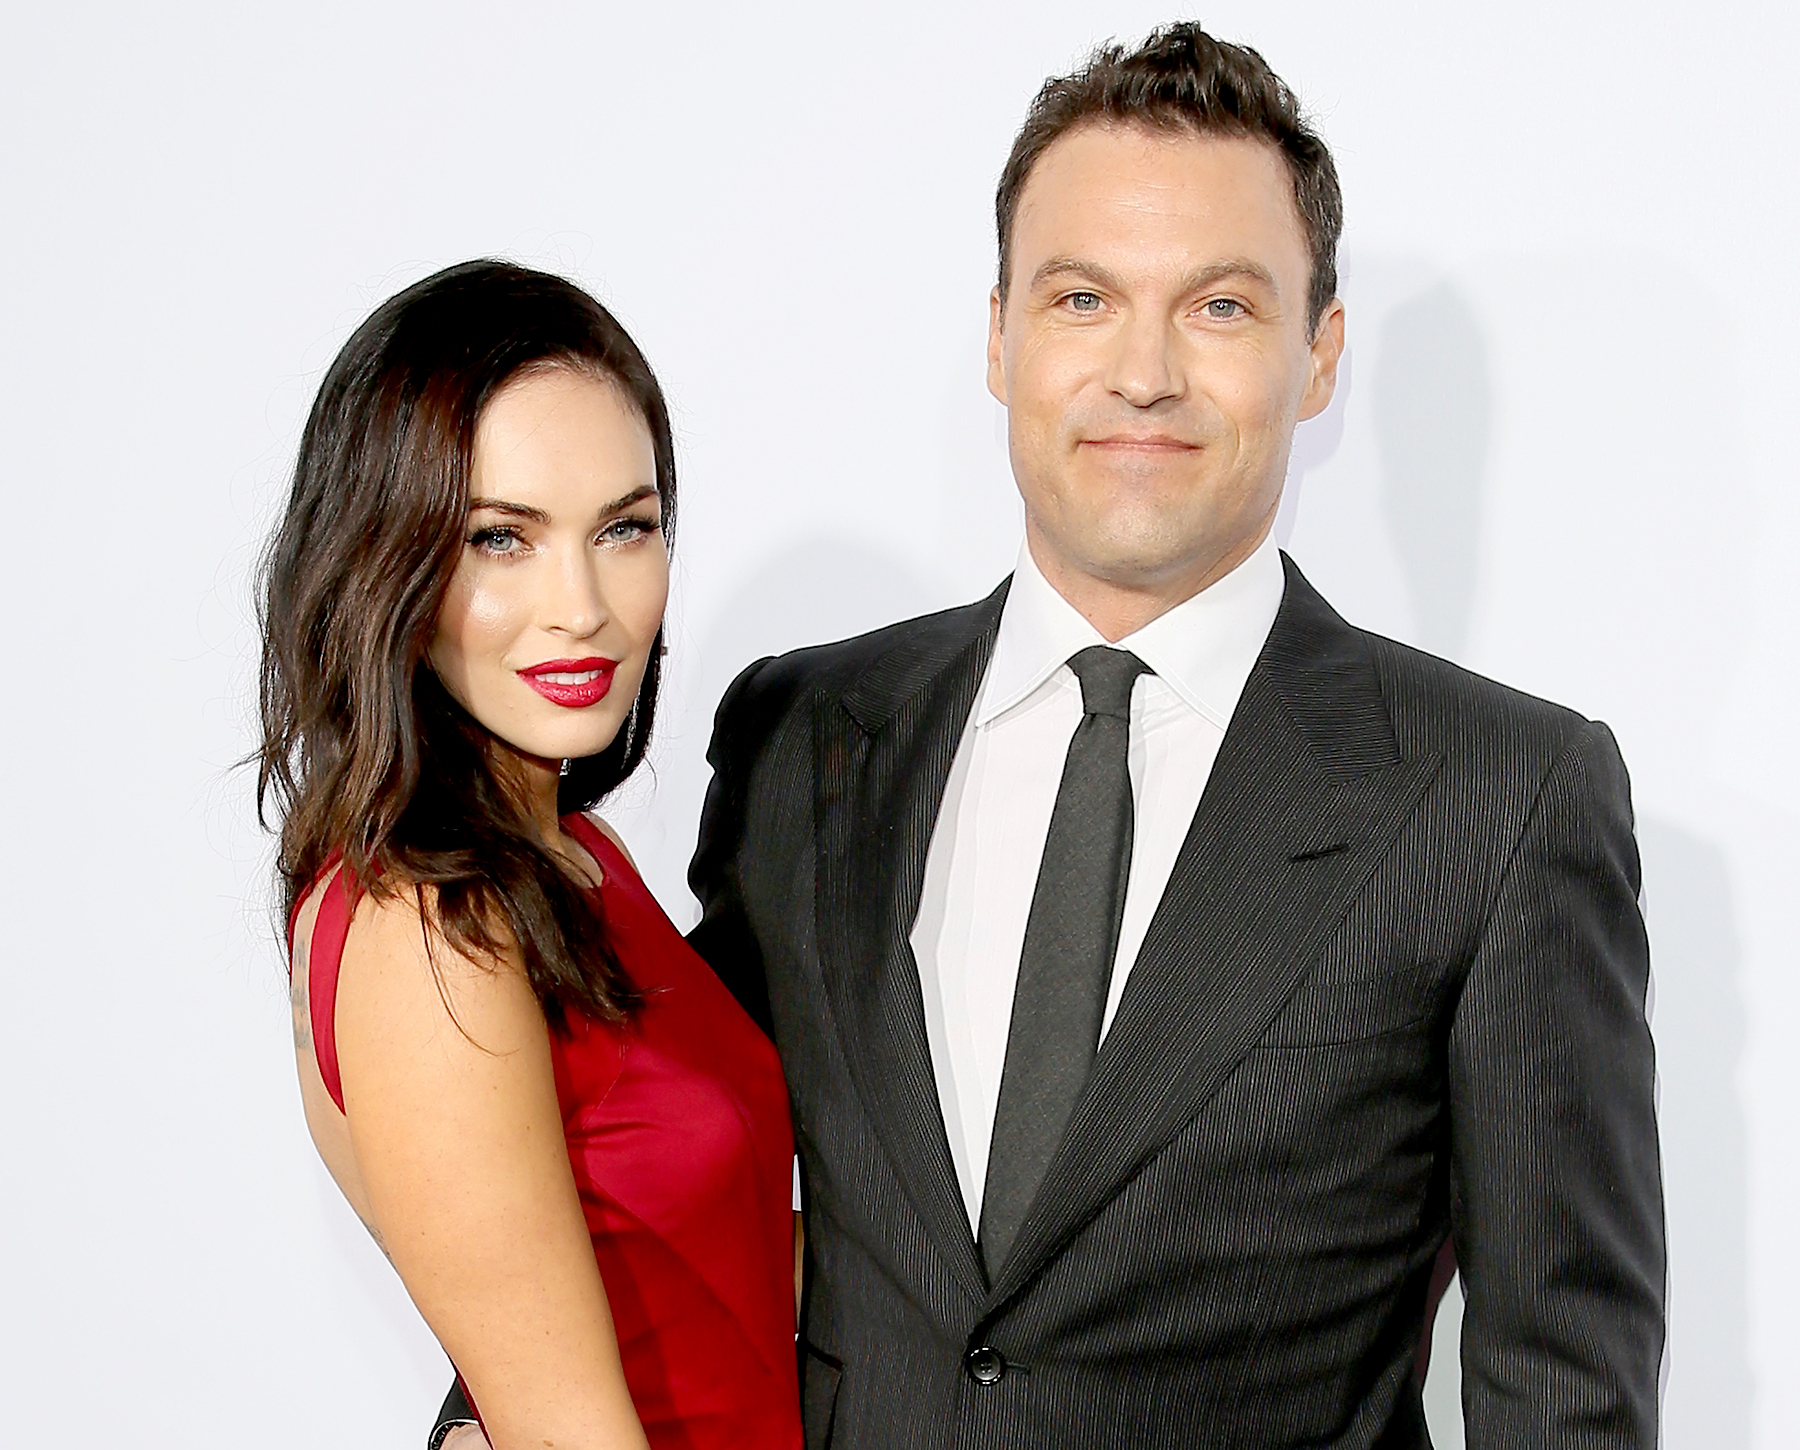 Megan Fox and Brian Austin Green attend Ferrari's 60th Anniversary in the USA Gala at the Wallis Annenberg Center for the Performing Arts on October 11, 2014 in Beverly Hills, California.